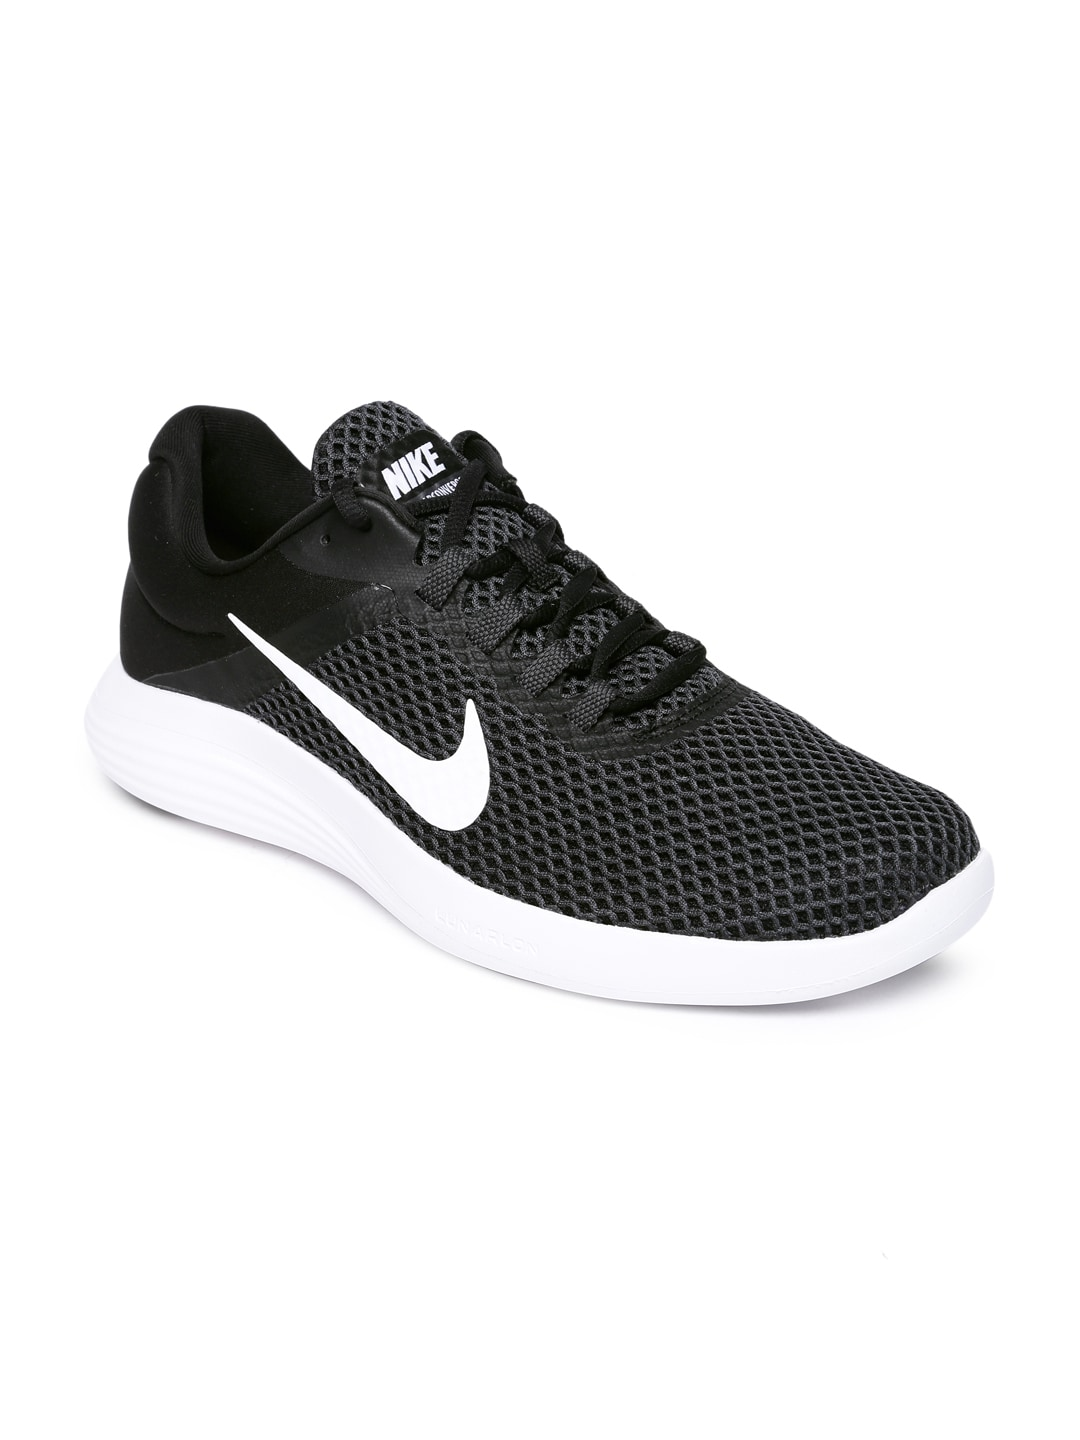 4b50b79079d Sports Shoes for Men - Buy Men Sports Shoes Online in India - Myntra